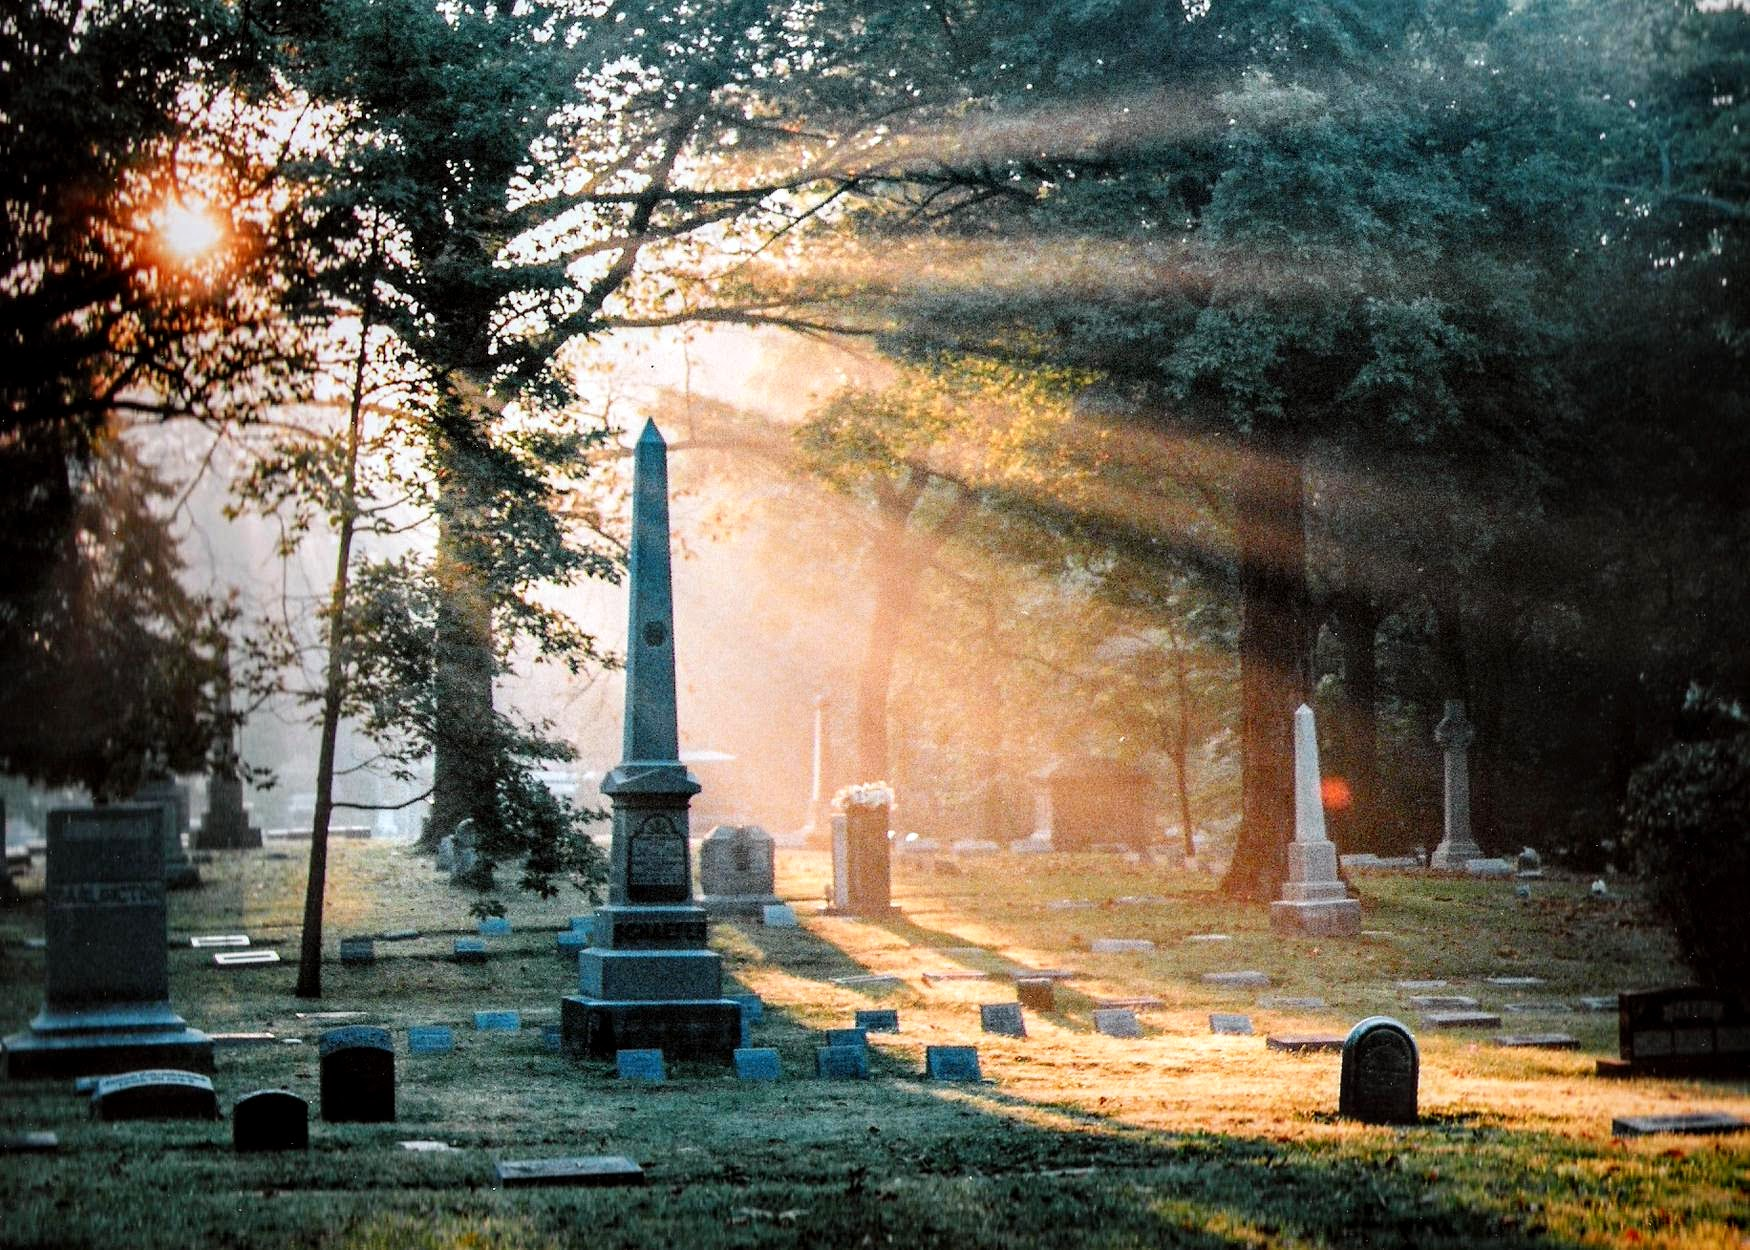 sun shining through cemetary